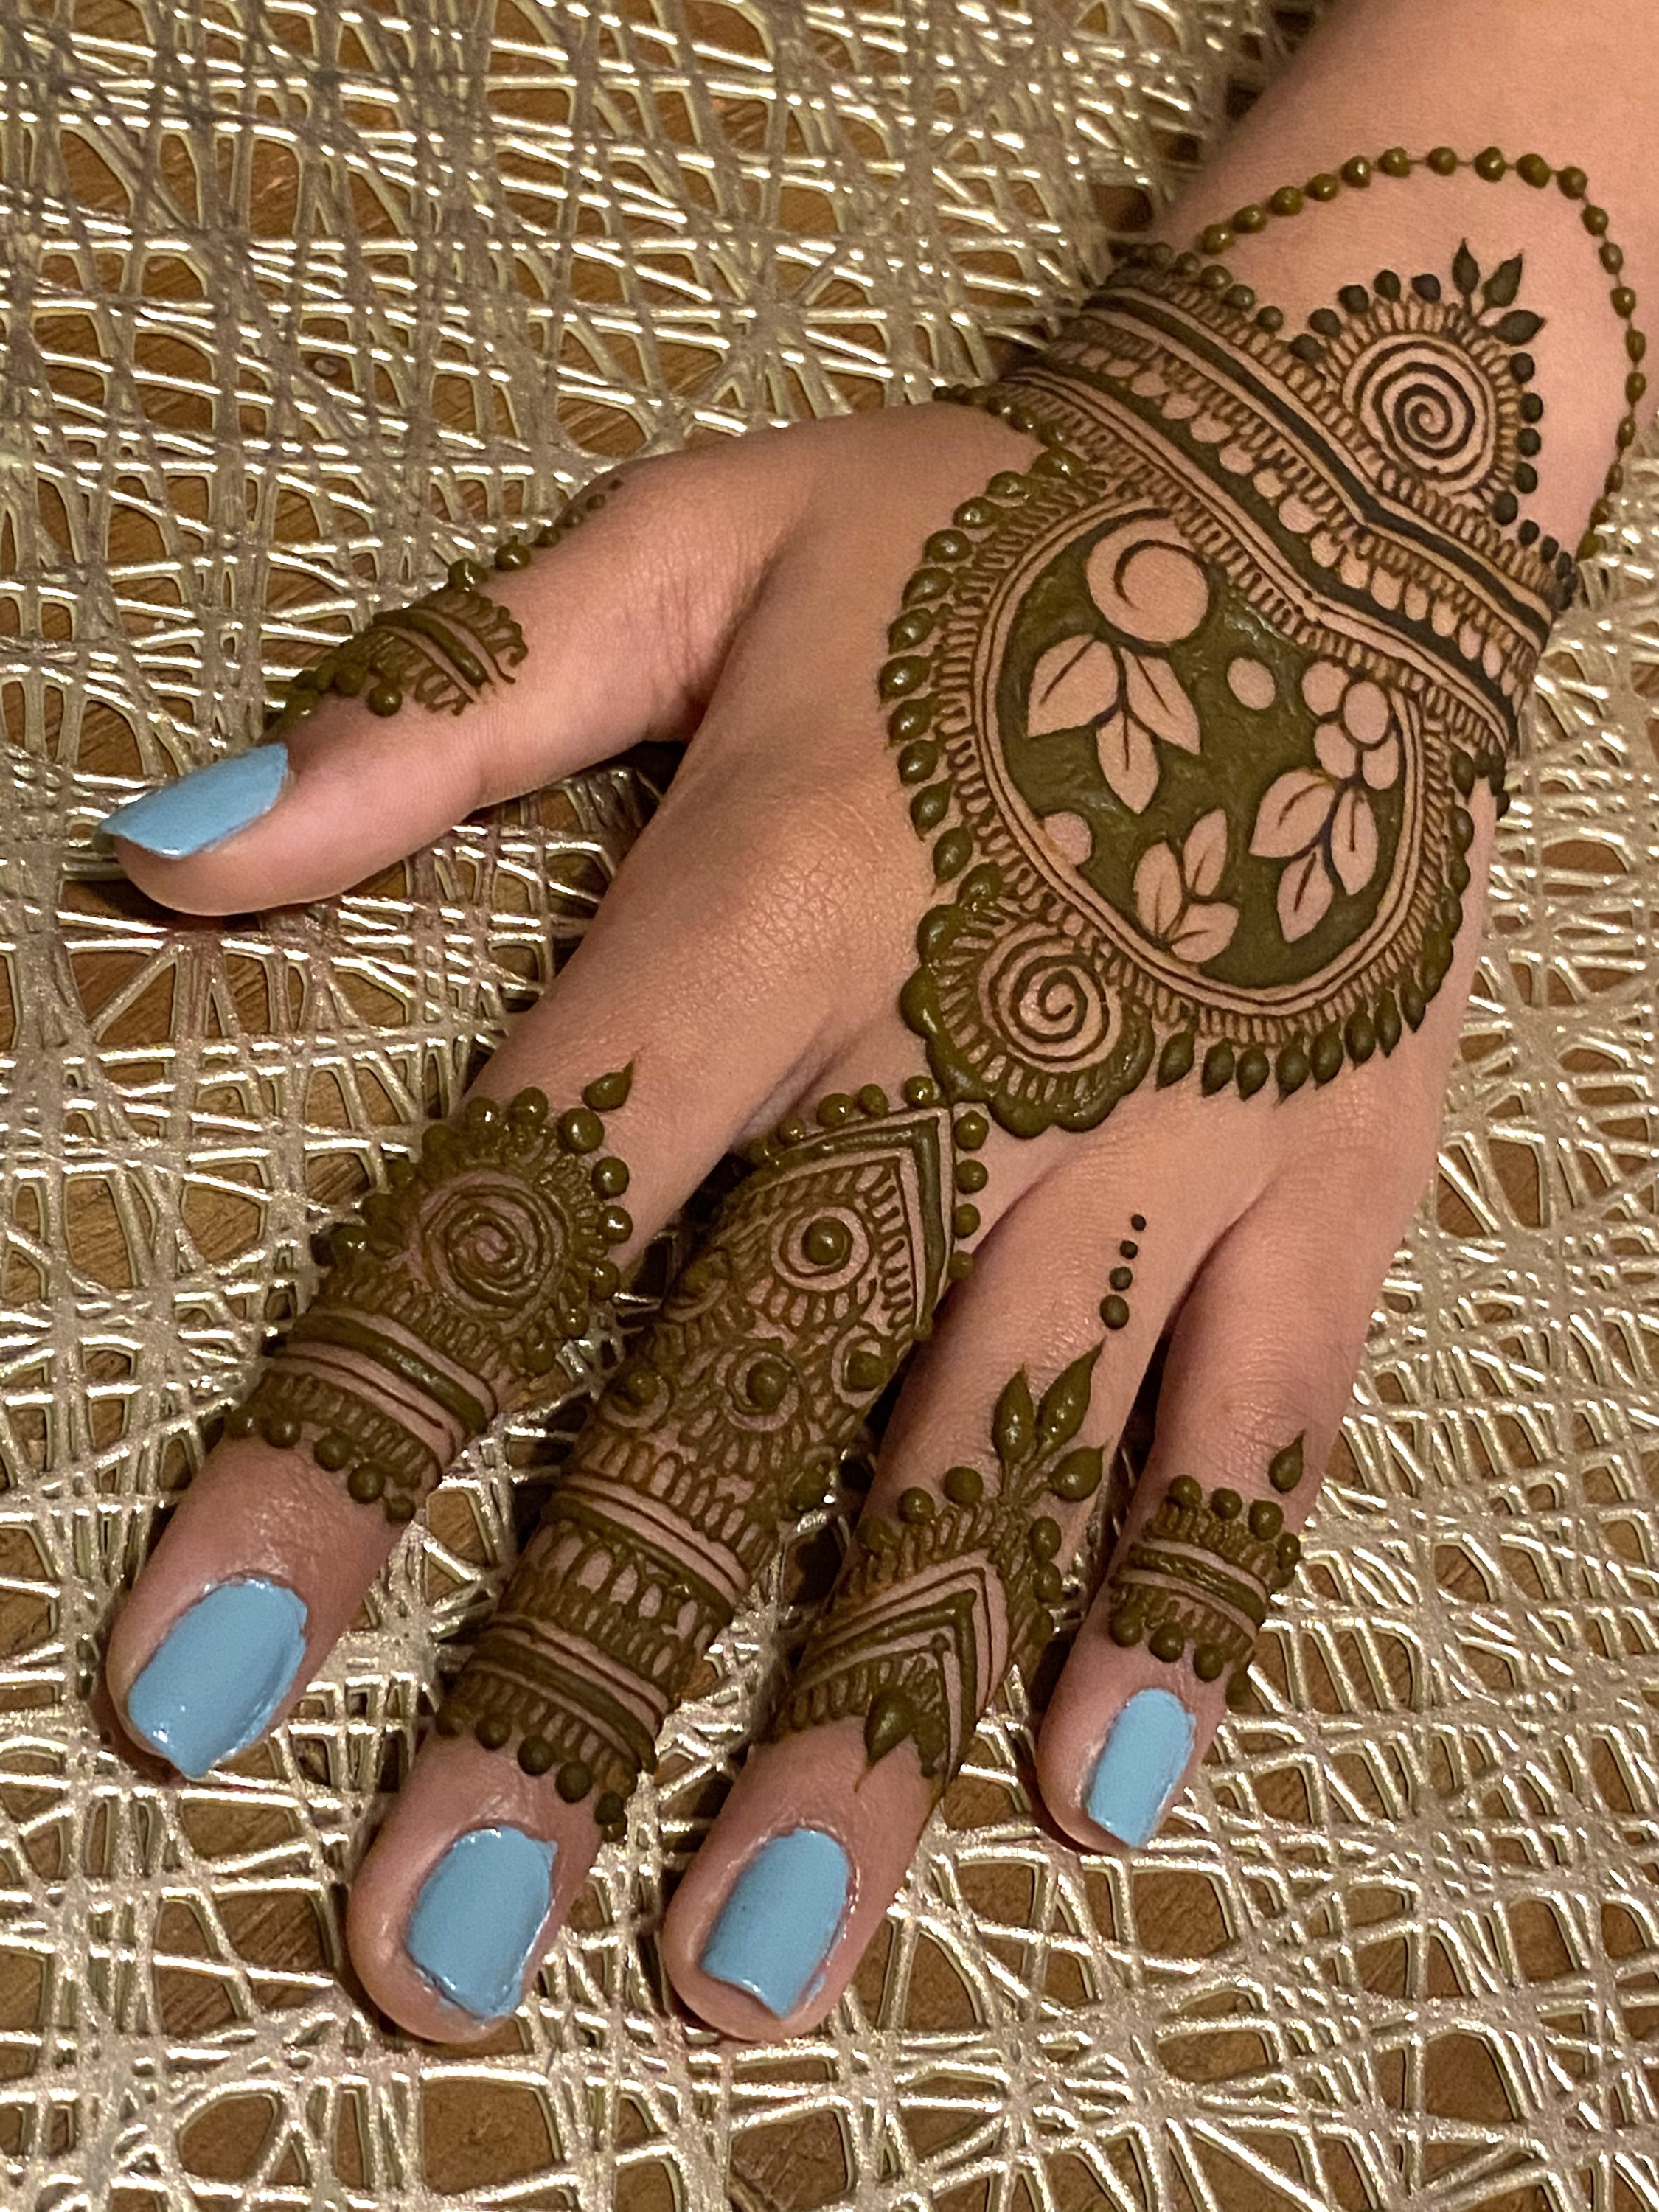 30 Minute Henna Appointment